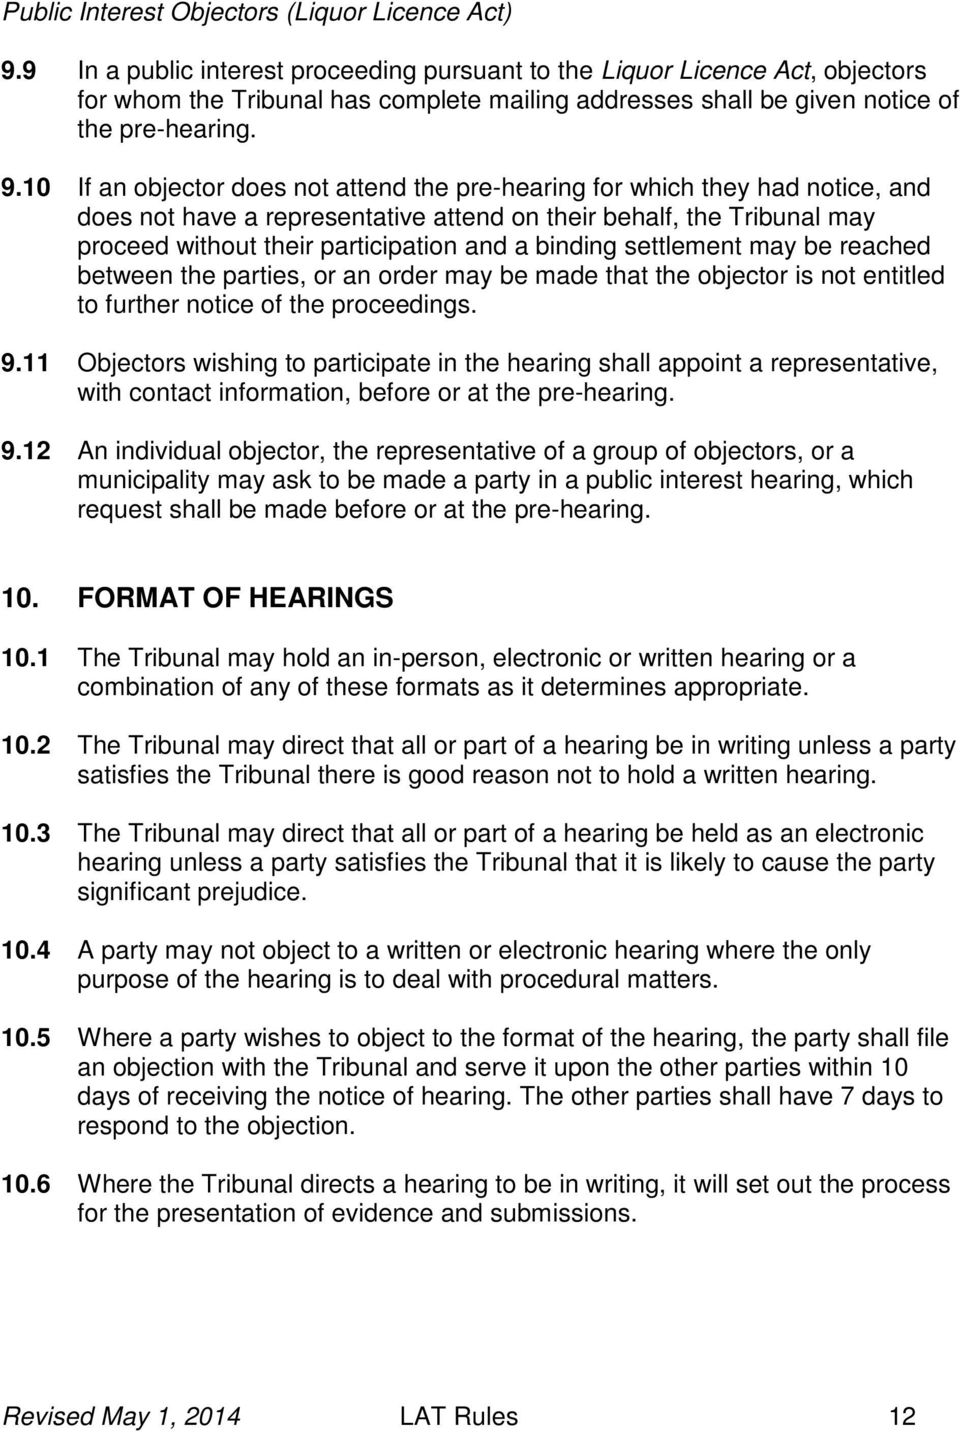 10 If an objector does not attend the pre-hearing for which they had notice, and does not have a representative attend on their behalf, the Tribunal may proceed without their participation and a